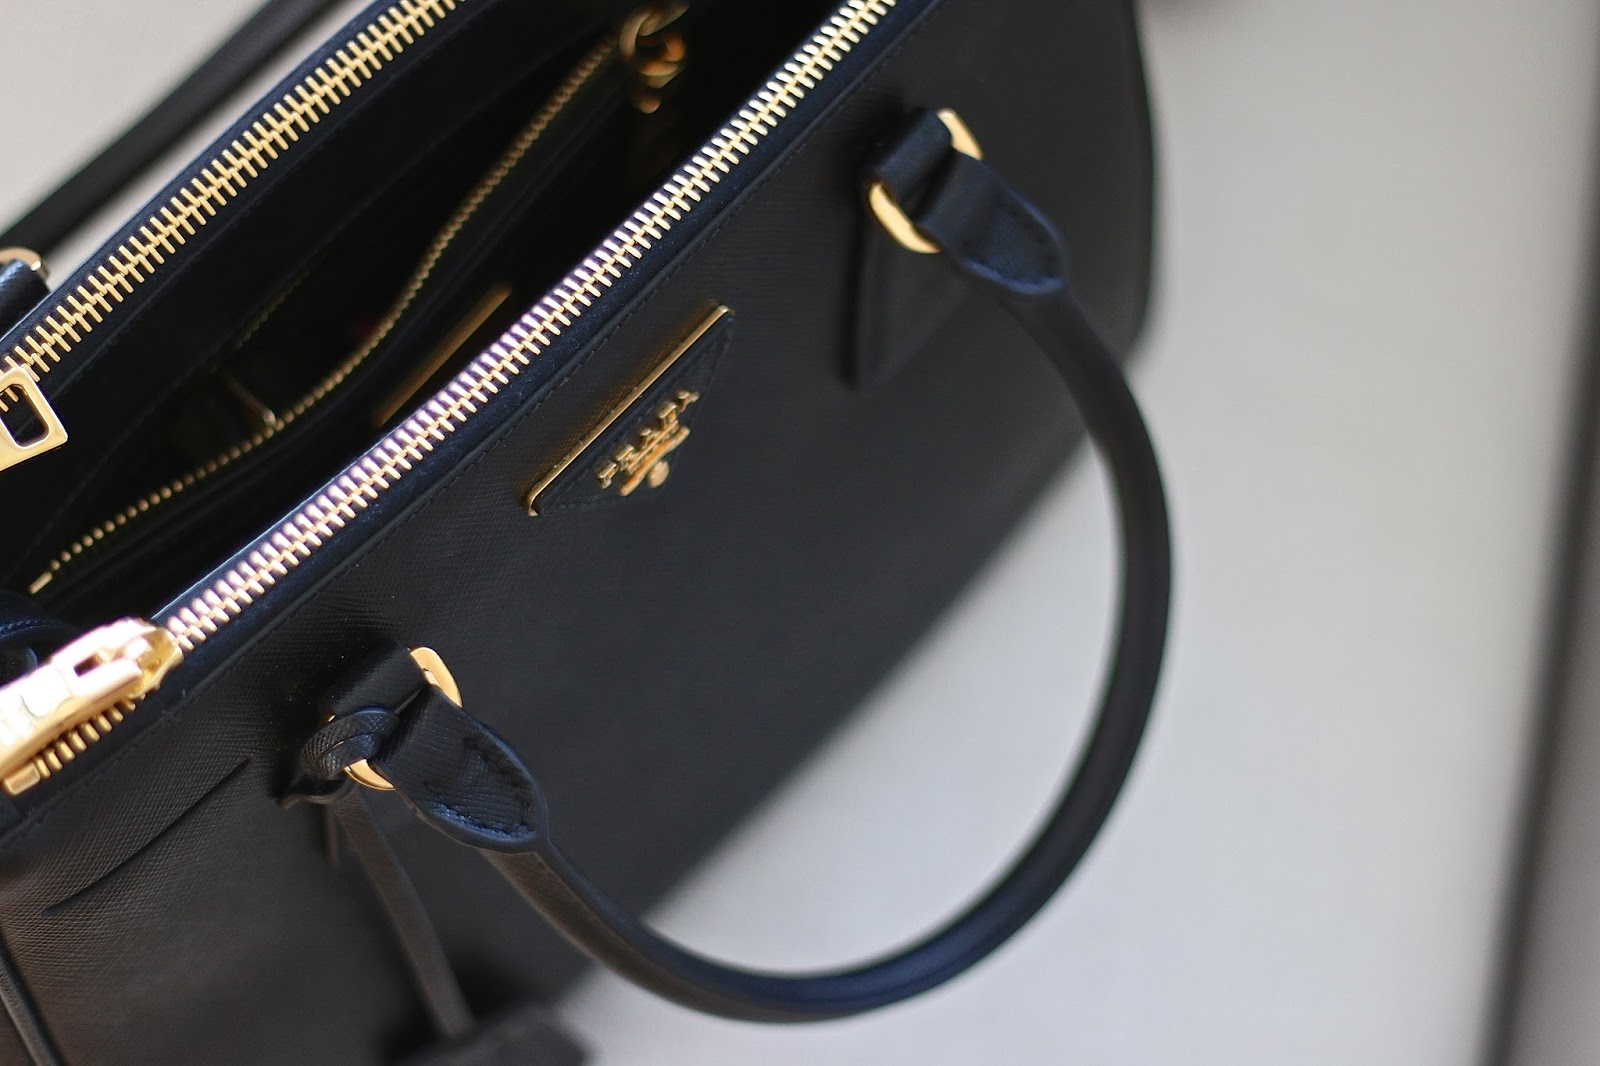 Prada Saffiano Double Zip Handbag Review